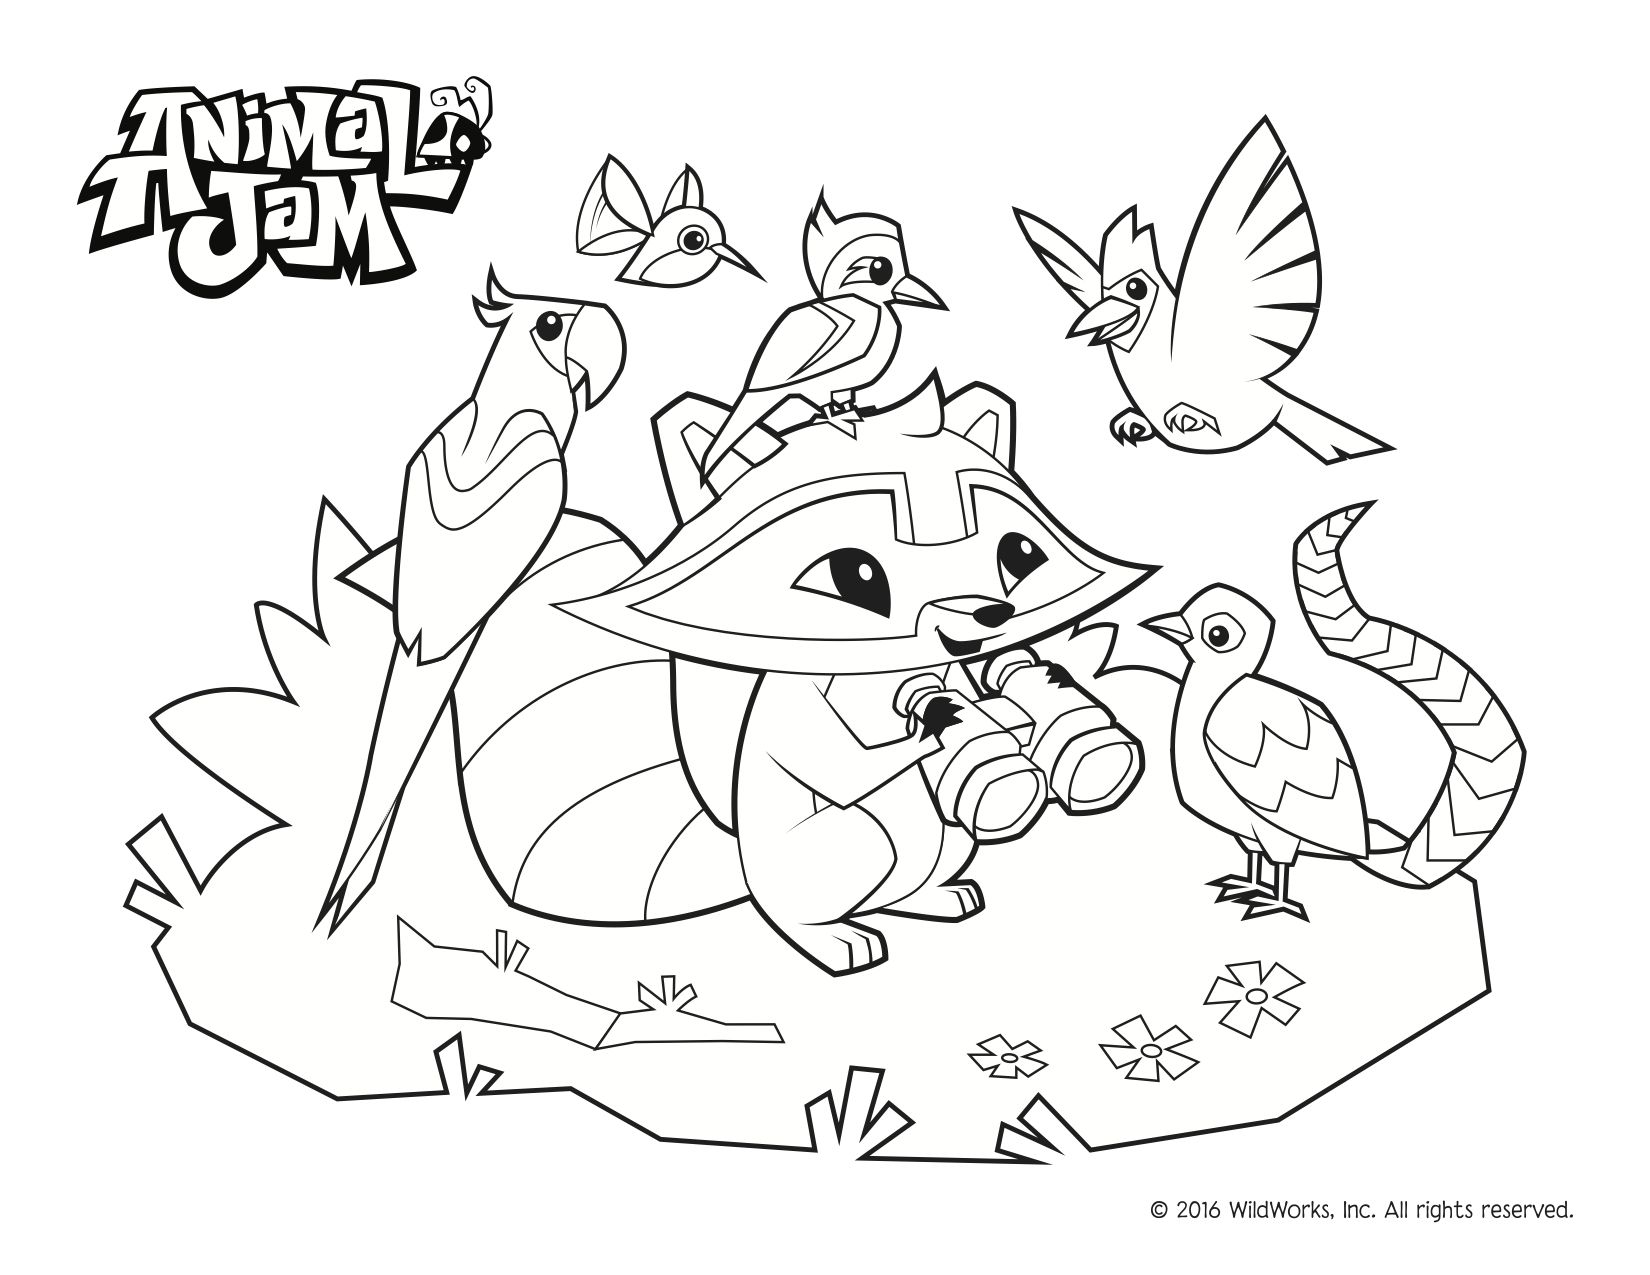 Printable coloring pages animal jam - Animal Jam Coloring Pages Celebrate Spring And The Environment With This Free Download